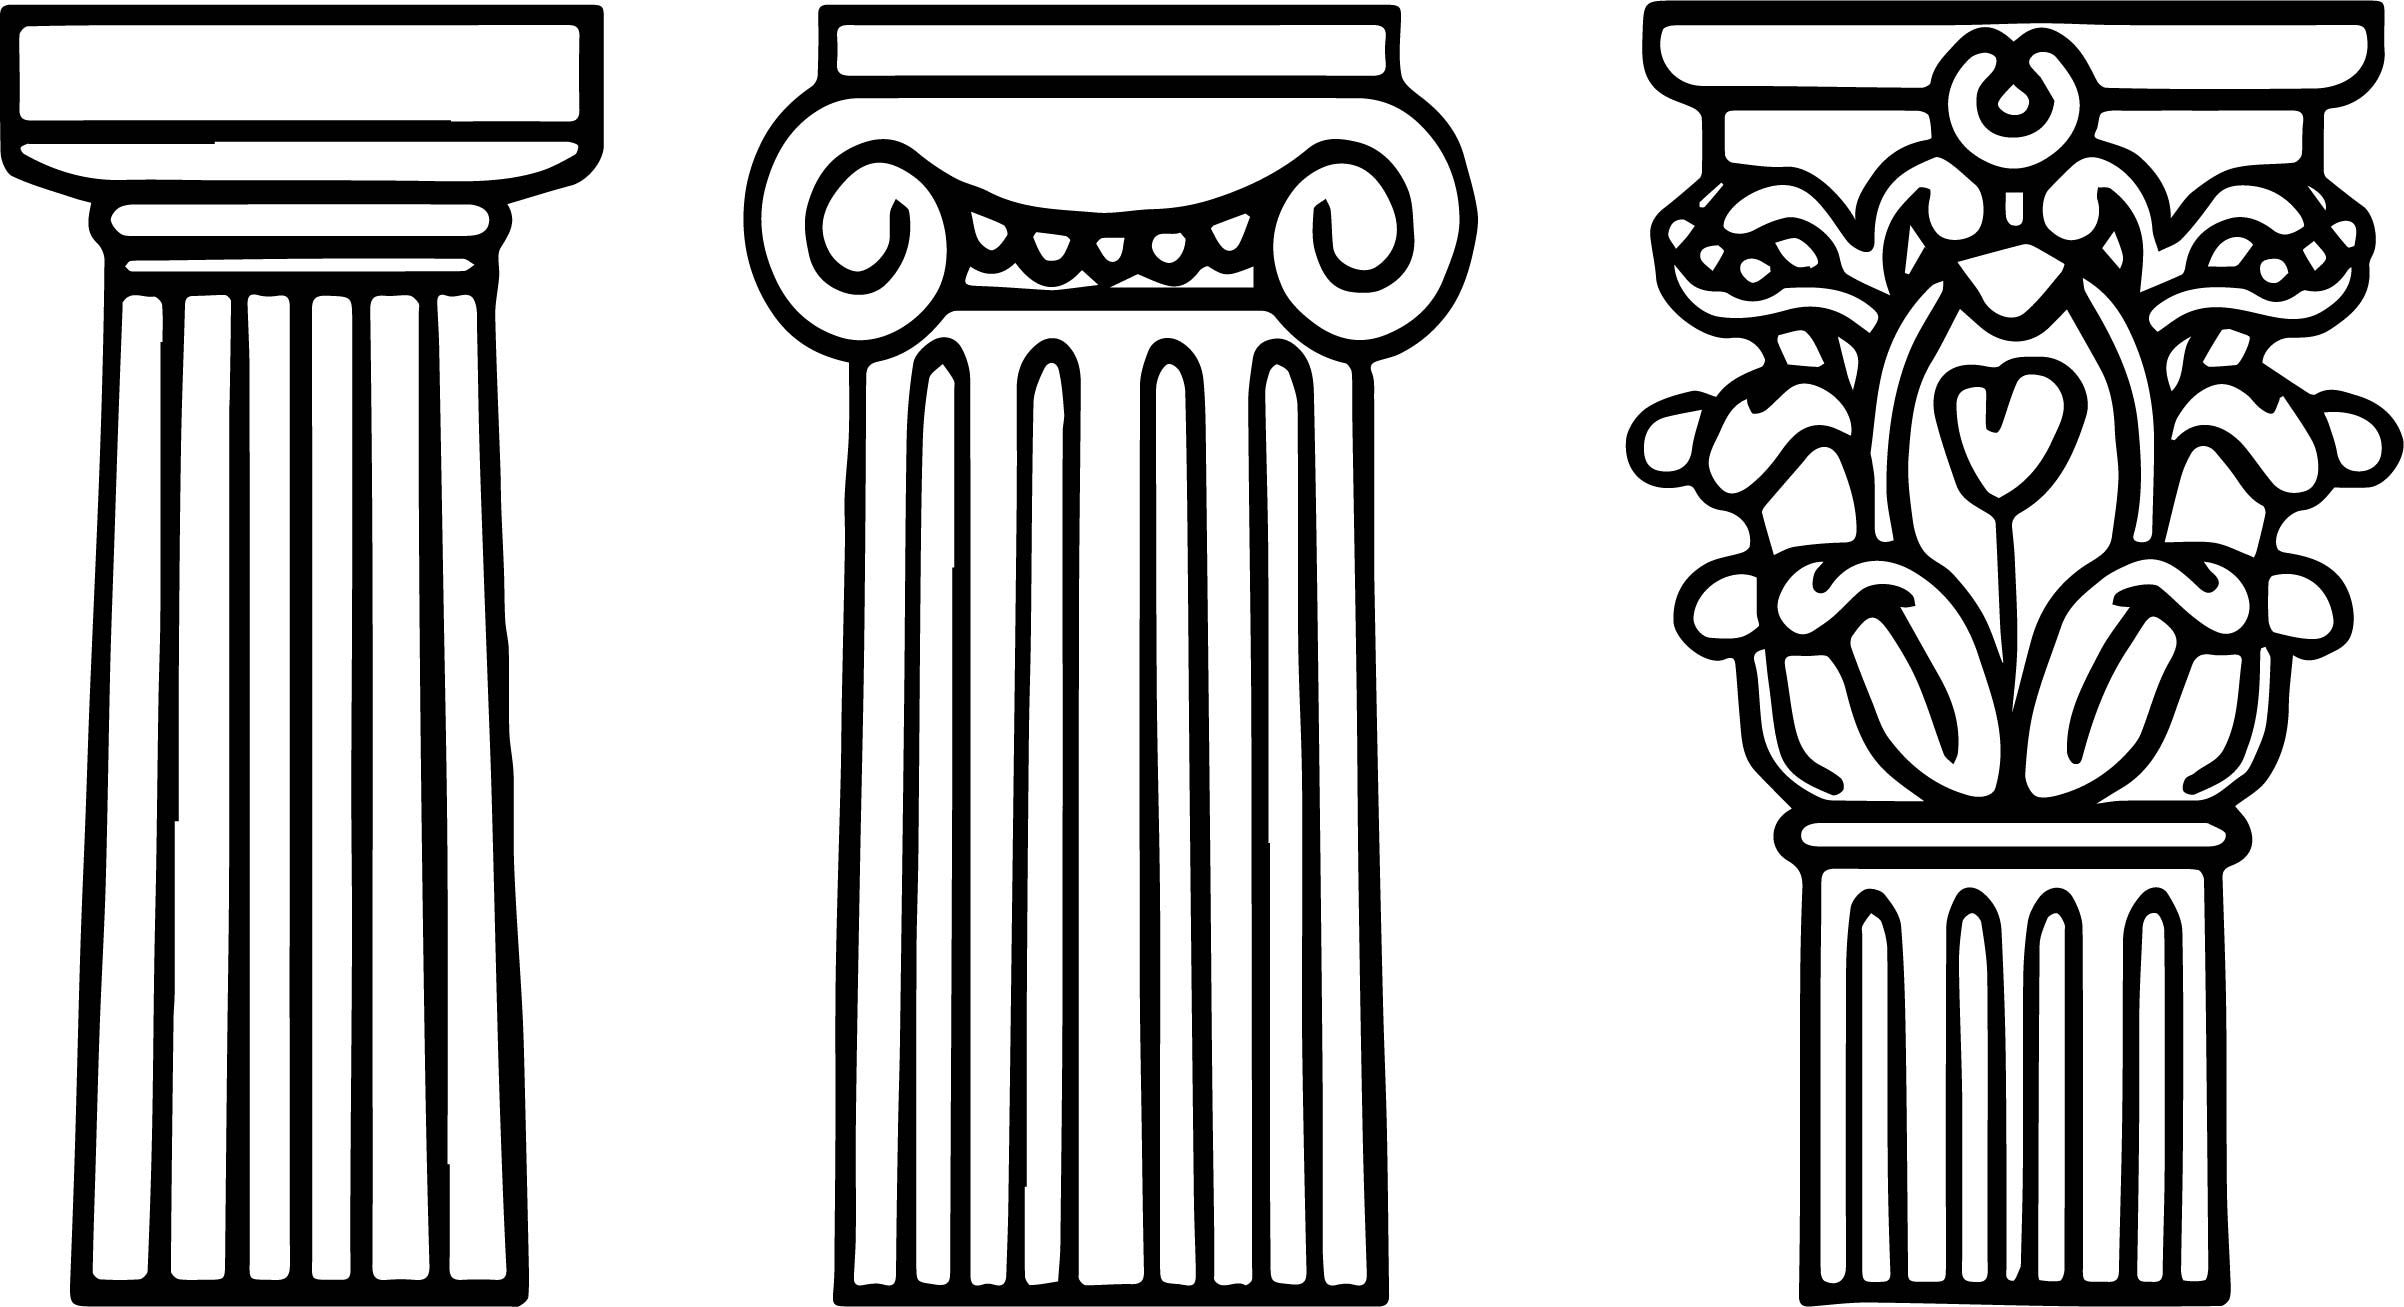 Awesome Architecture Columns Coloring Page